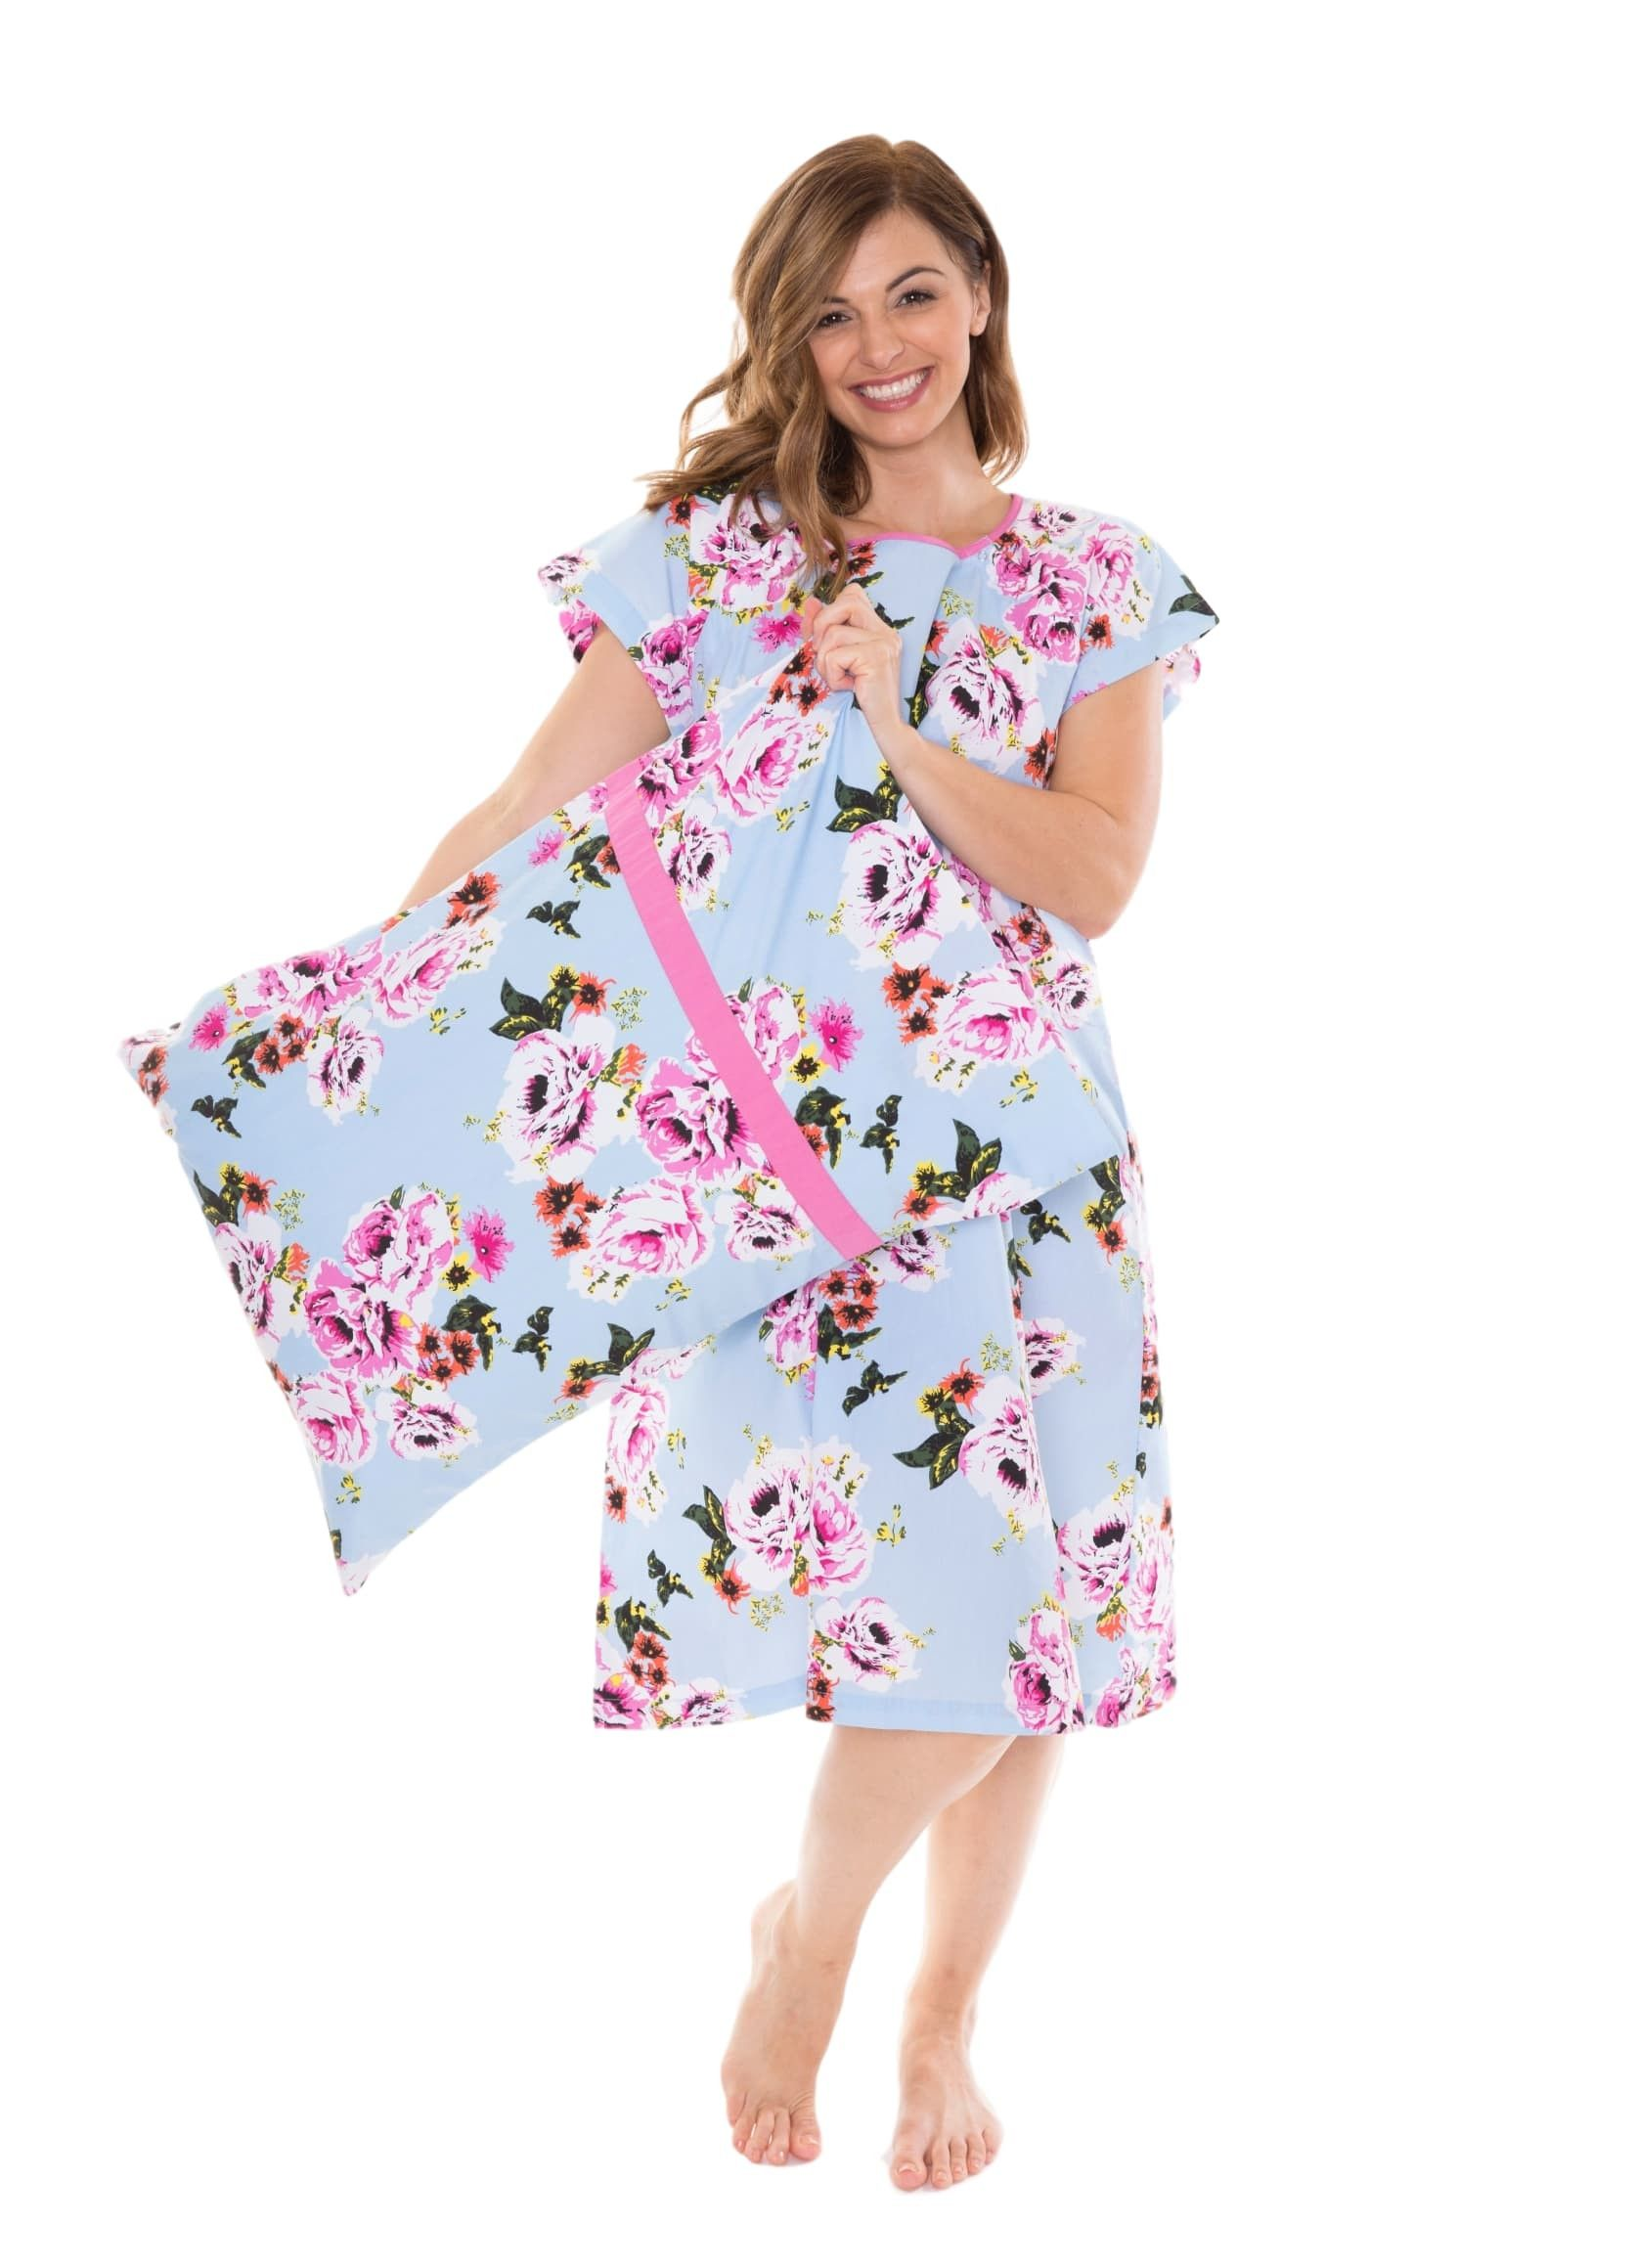 a7f40d11c81 Isla Gownie   Pillowcase Set Maternity Delivery Labor Birthing Hospital  Gown Floral